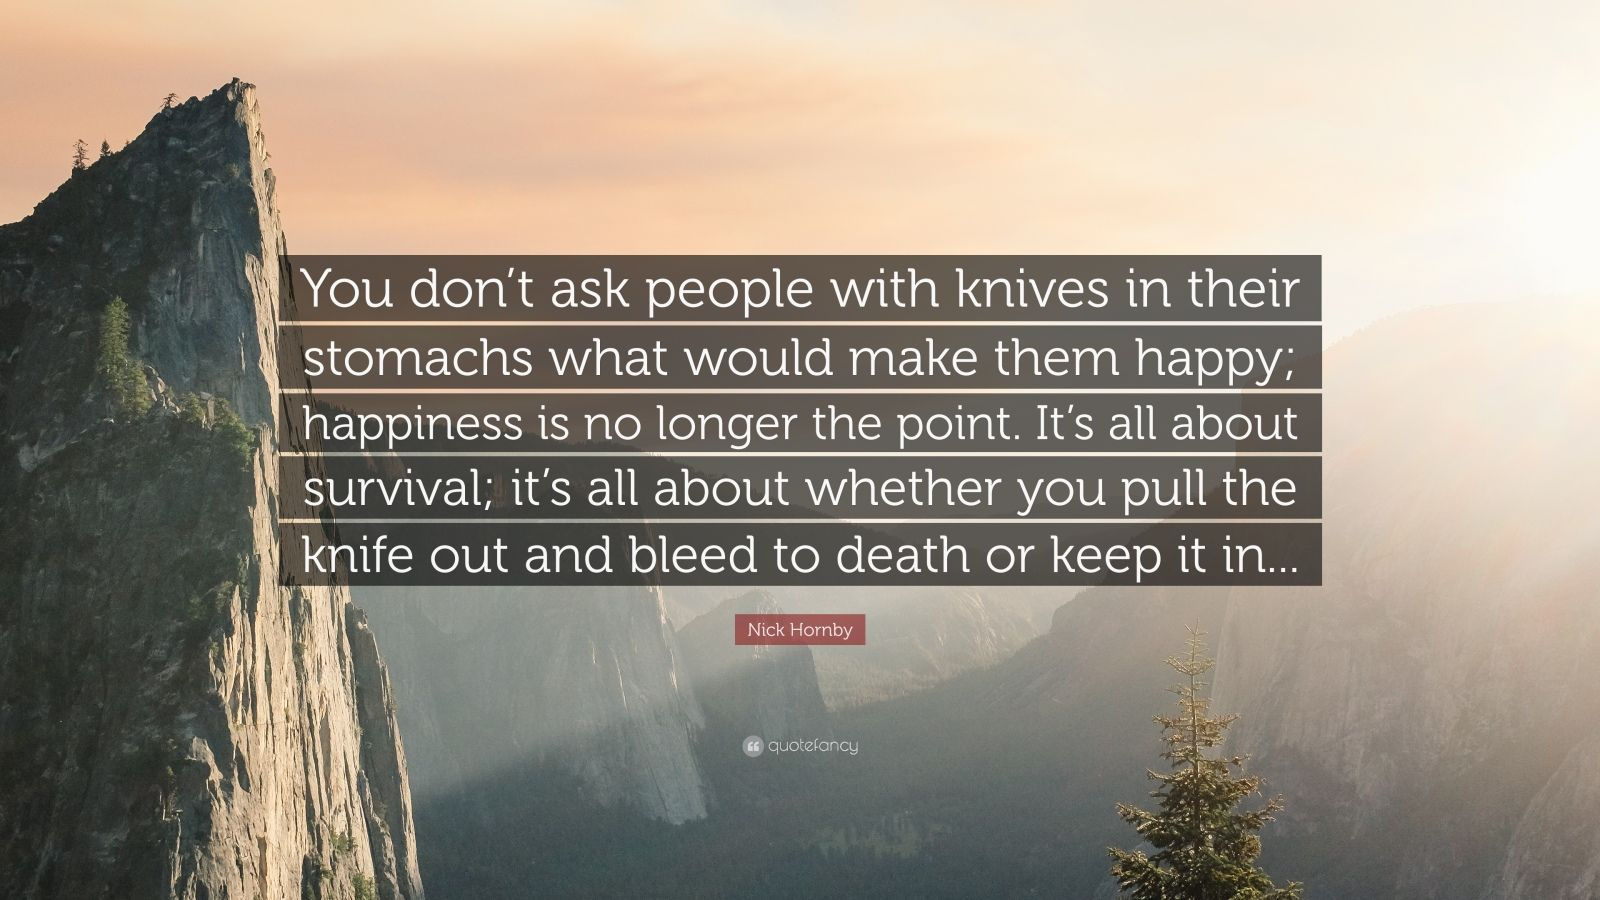 """Nick Hornby Quote: """"You don't ask people with knives in their stomachs what would make them happy; happiness is no longer the point. It's all about survival; it's all about whether you pull the knife out and bleed to death or keep it in..."""""""